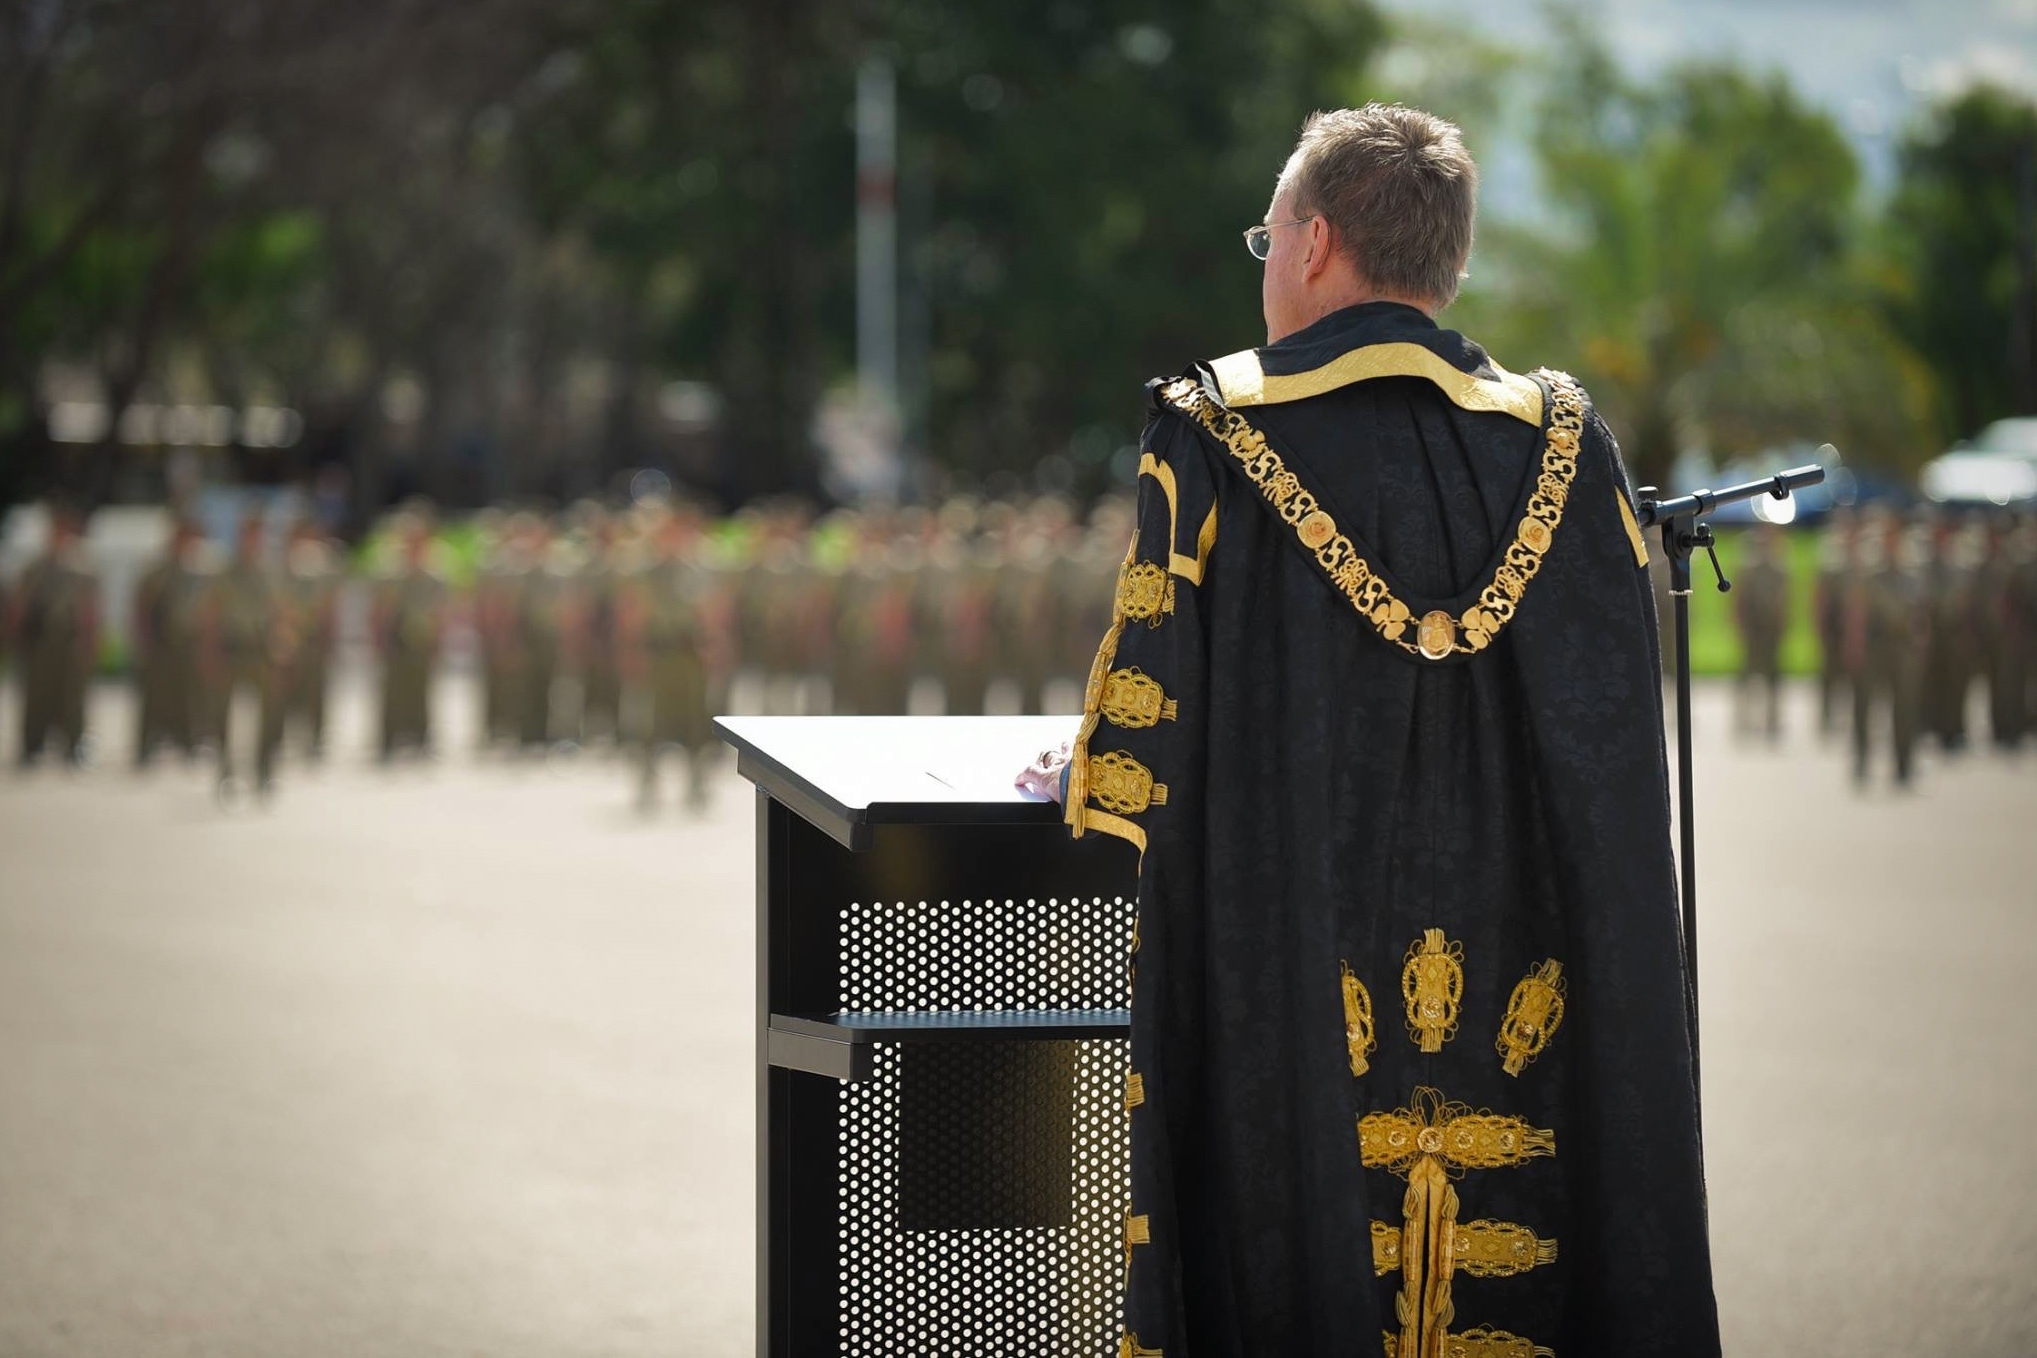 Lord Mayor Martin Haese addresses troops of the 10th/27th Battalion at the Torrens Parade Ground